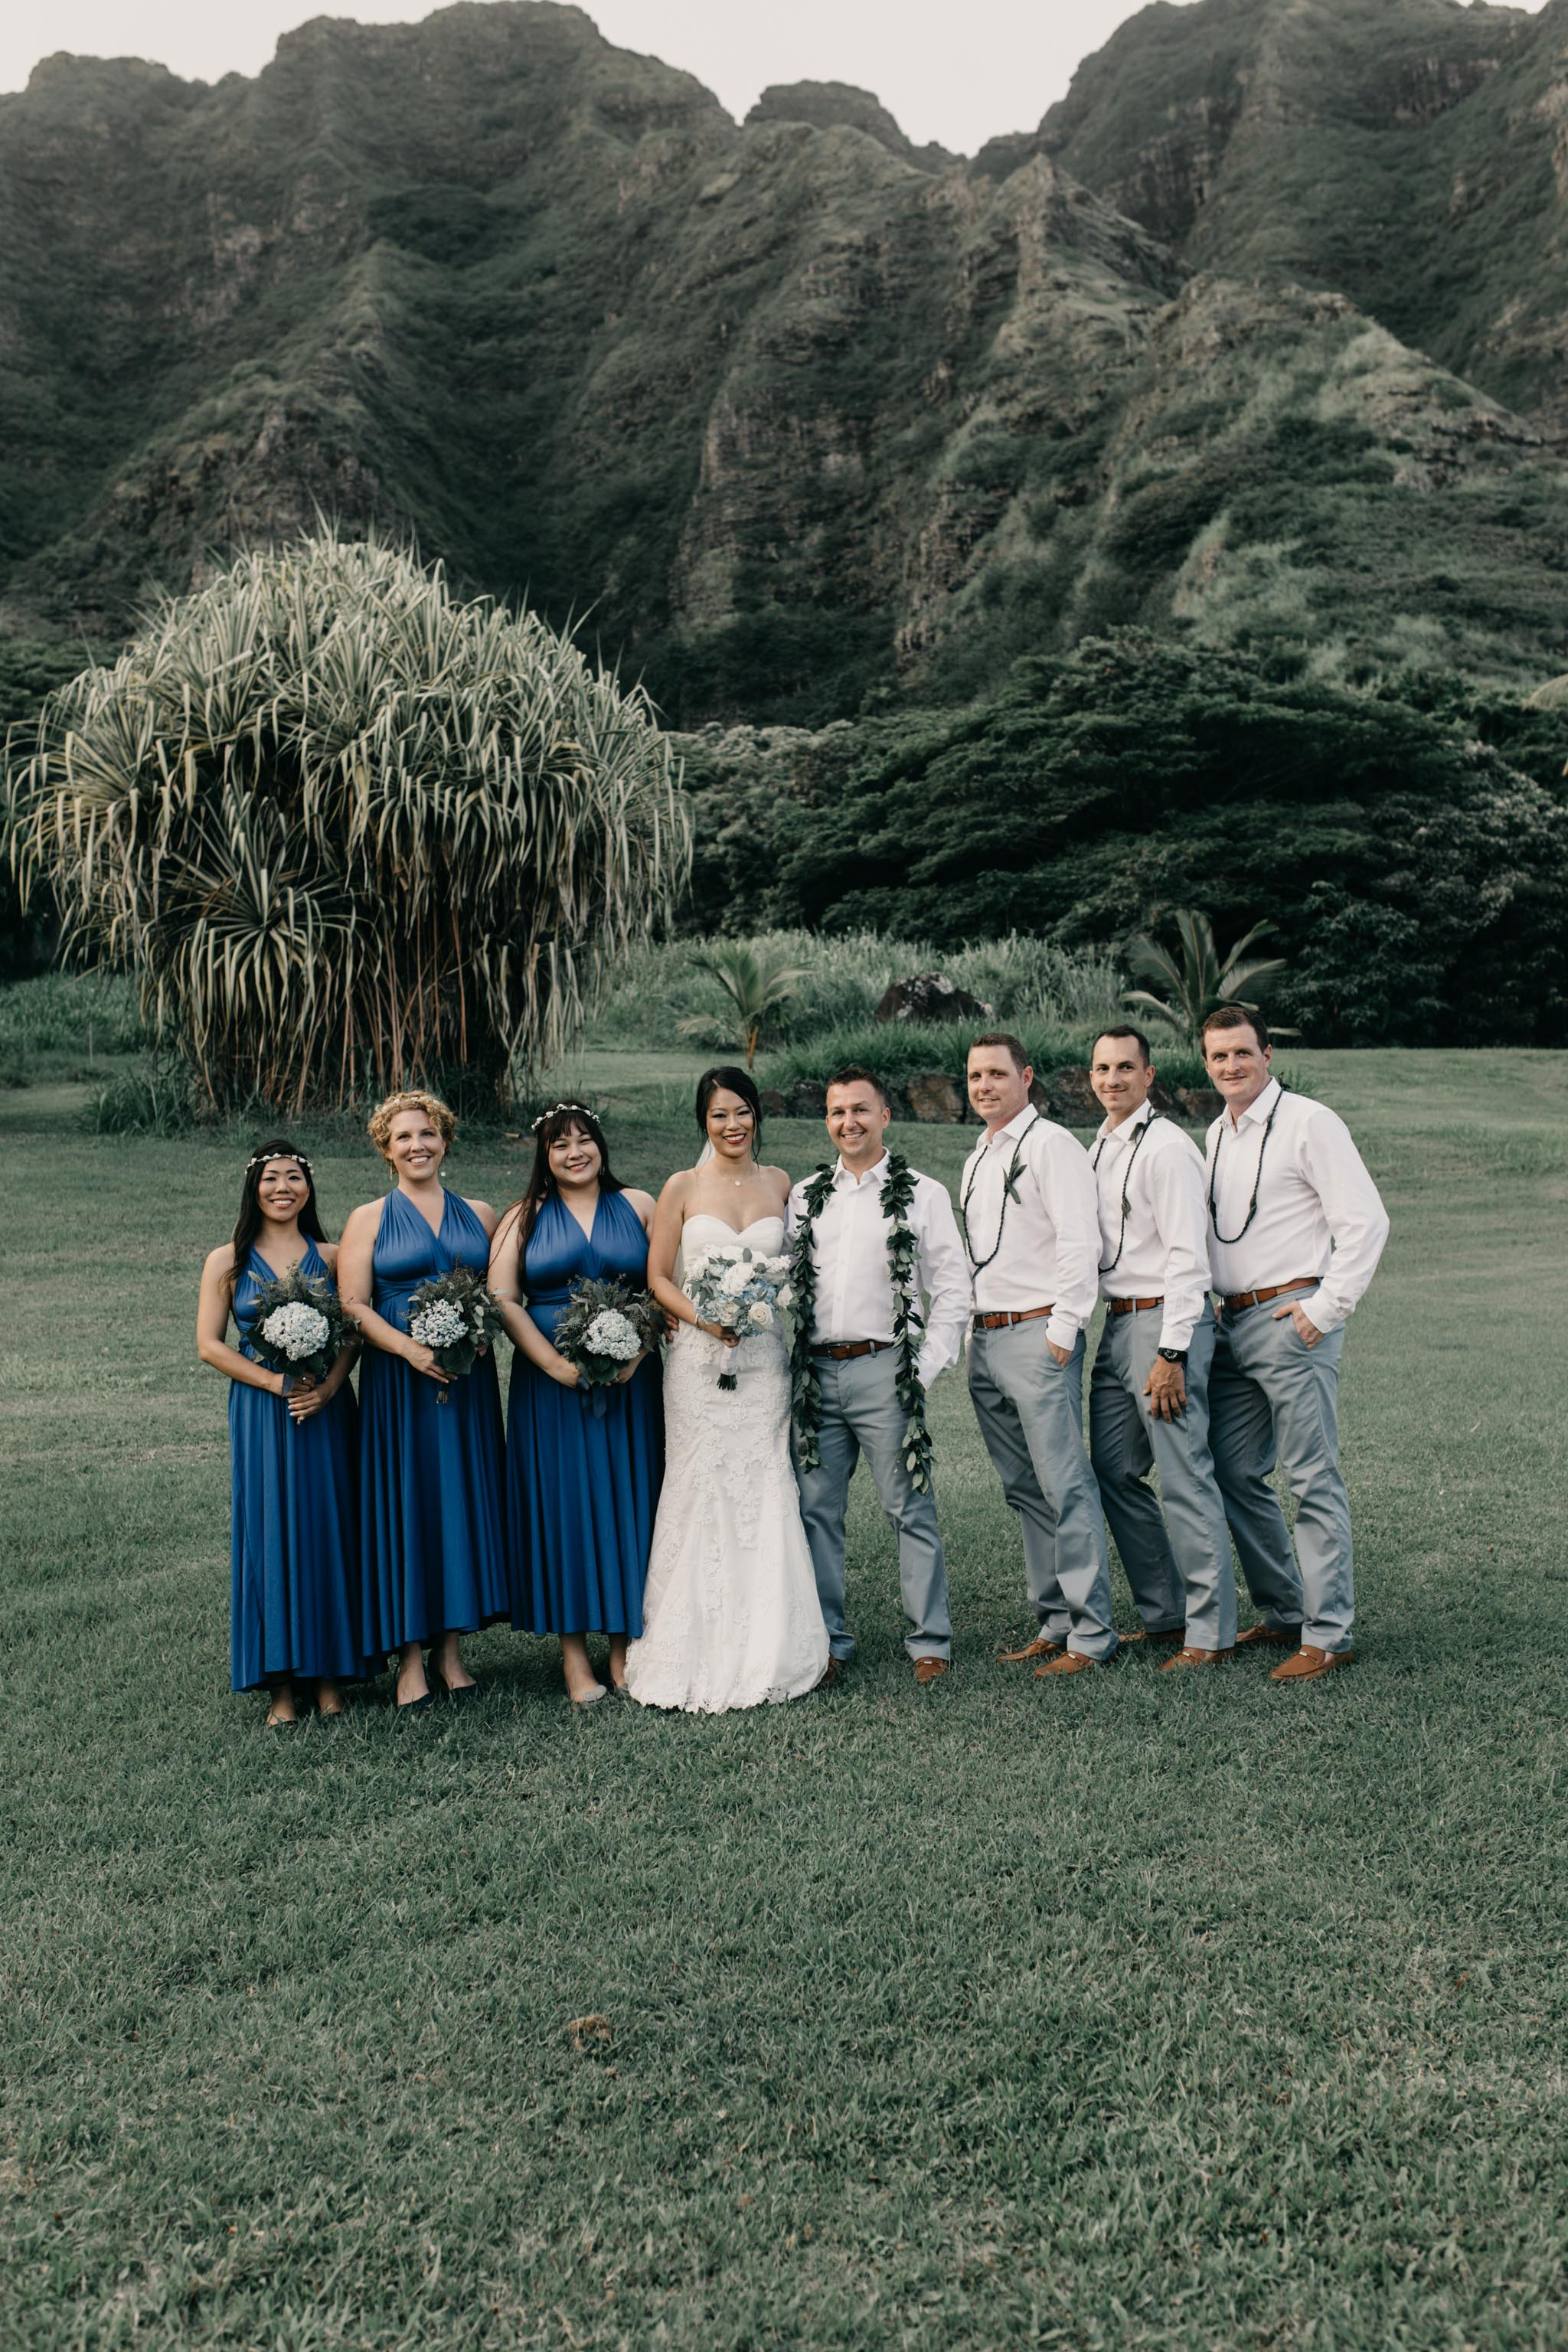 Bridal Party Photo at Kualoa Ranch Paliku Gardens. Photography by Hawaii wedding photographer Desiree Leilani